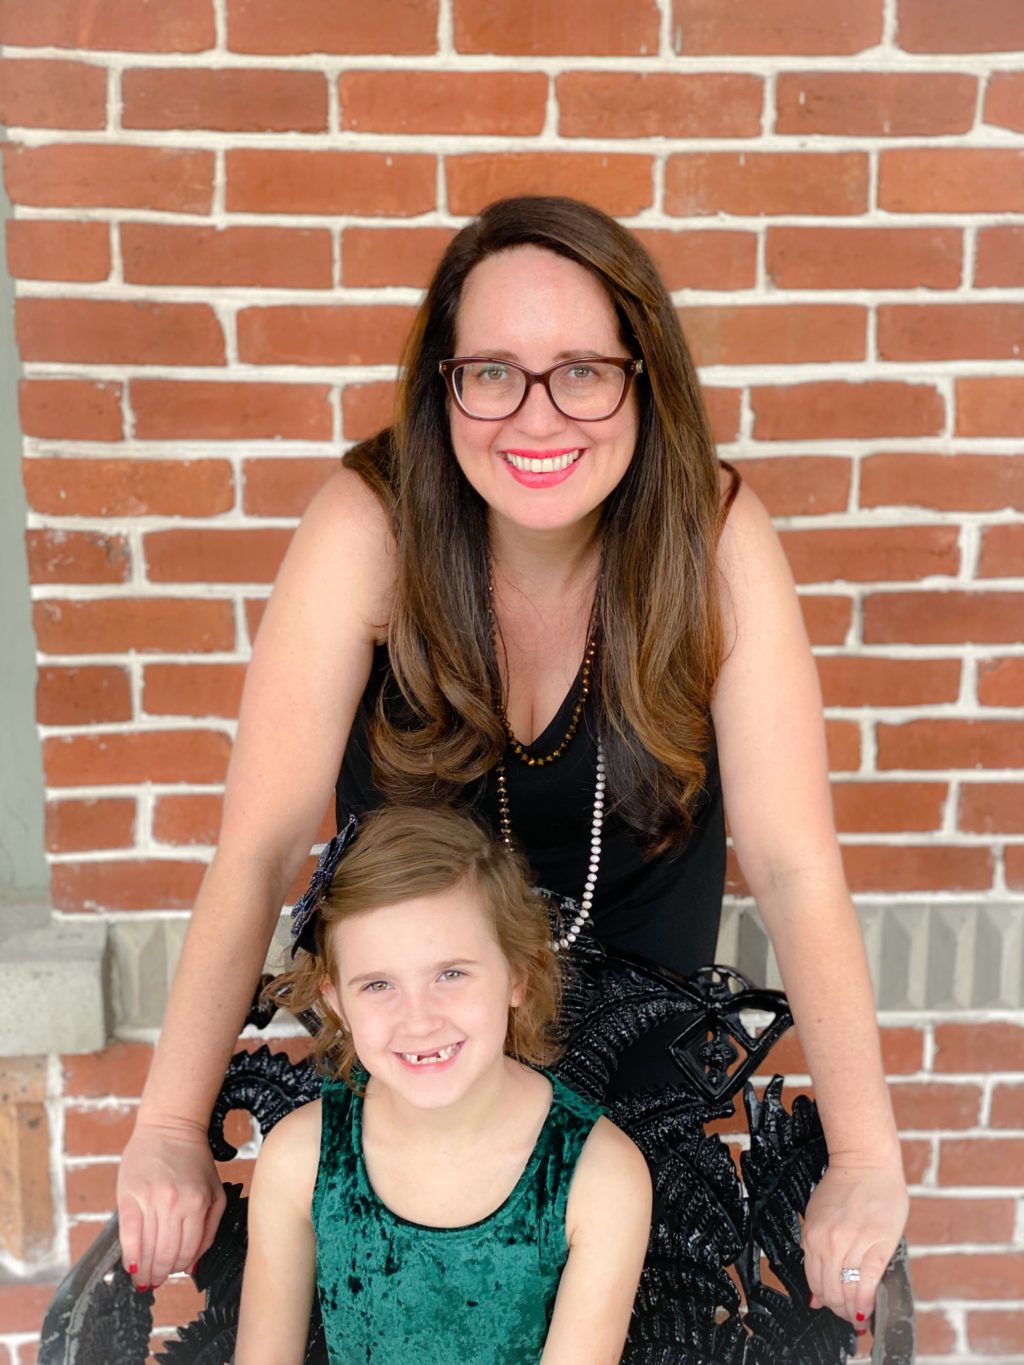 mom and daughter posing in black dresses and glasses